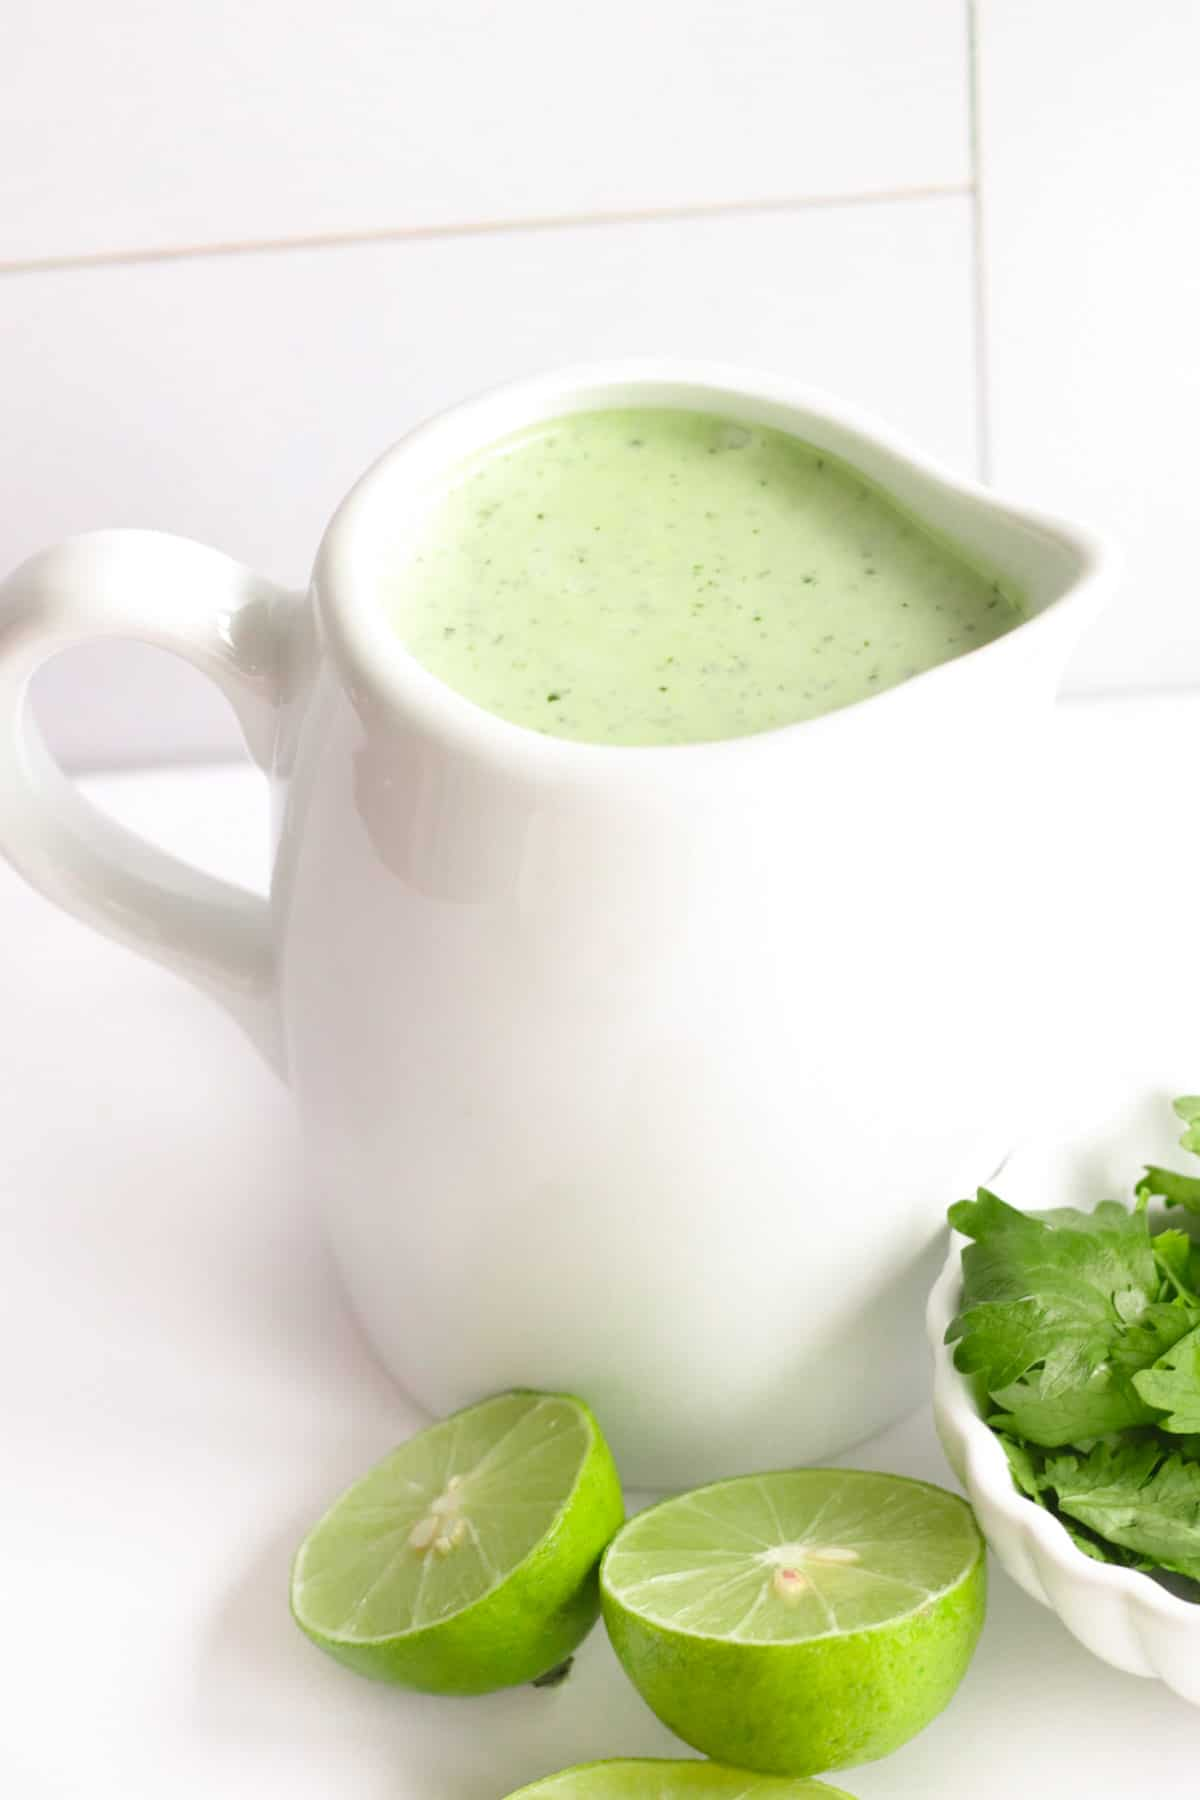 jalapeno ranch dressing in a white container for pouring nest to a dish of cilantro and limes